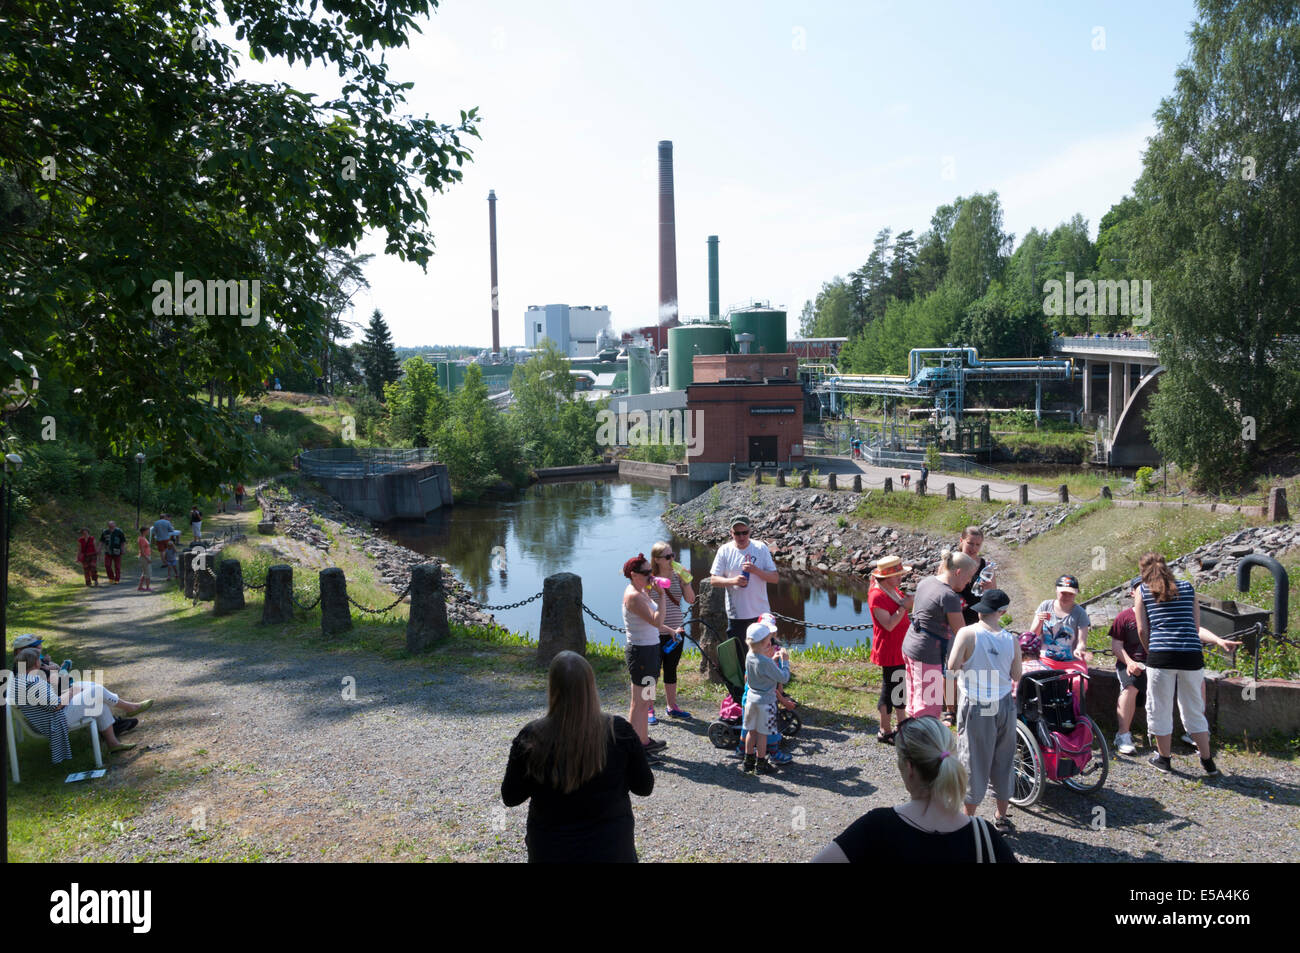 People standing in front of the sluice gates on the River Papila in Kyröskoski Finland - Stock Image